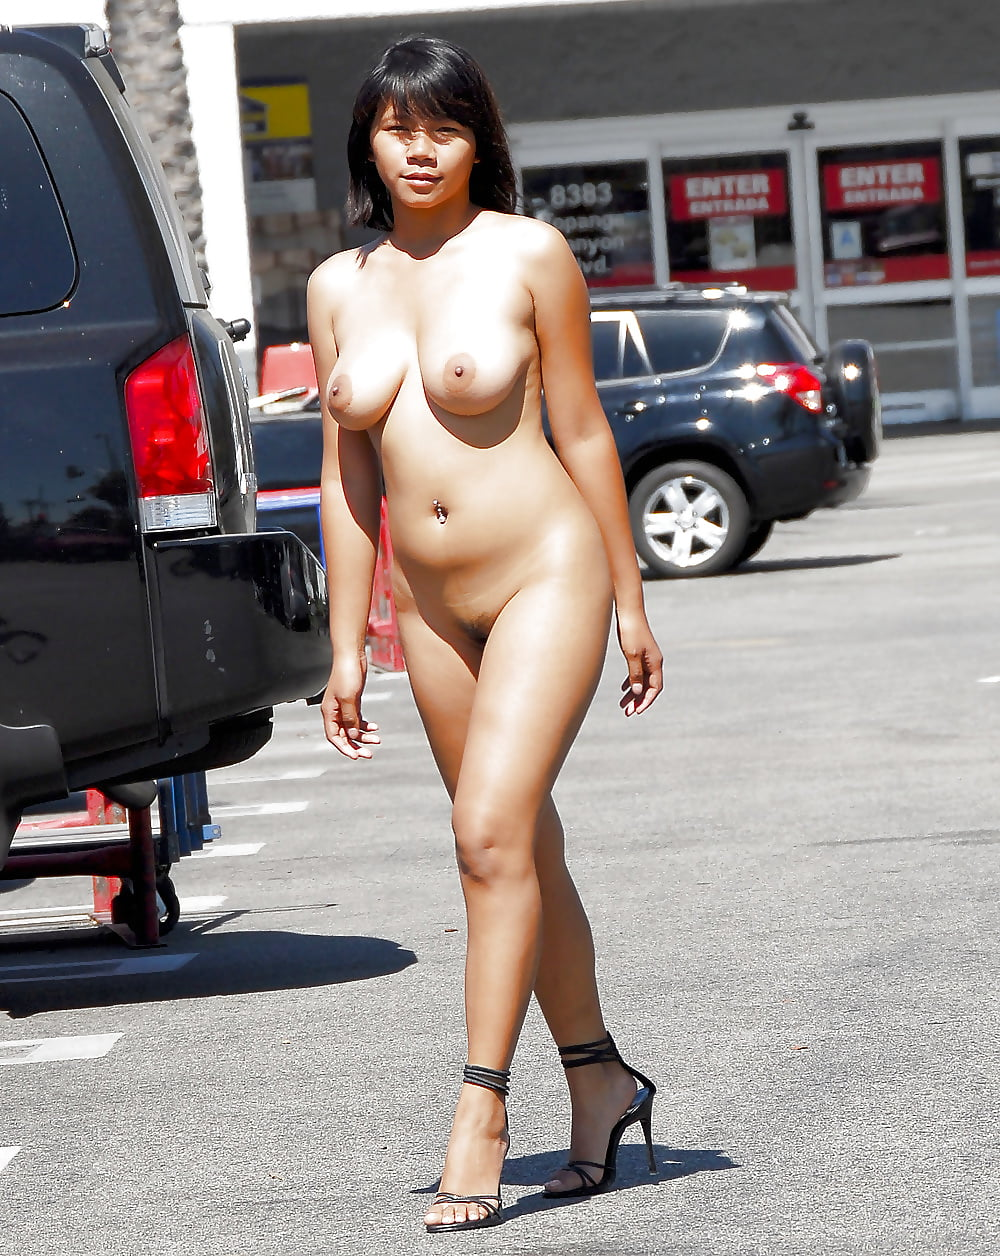 Asian outdoor naked pussy pictures gang